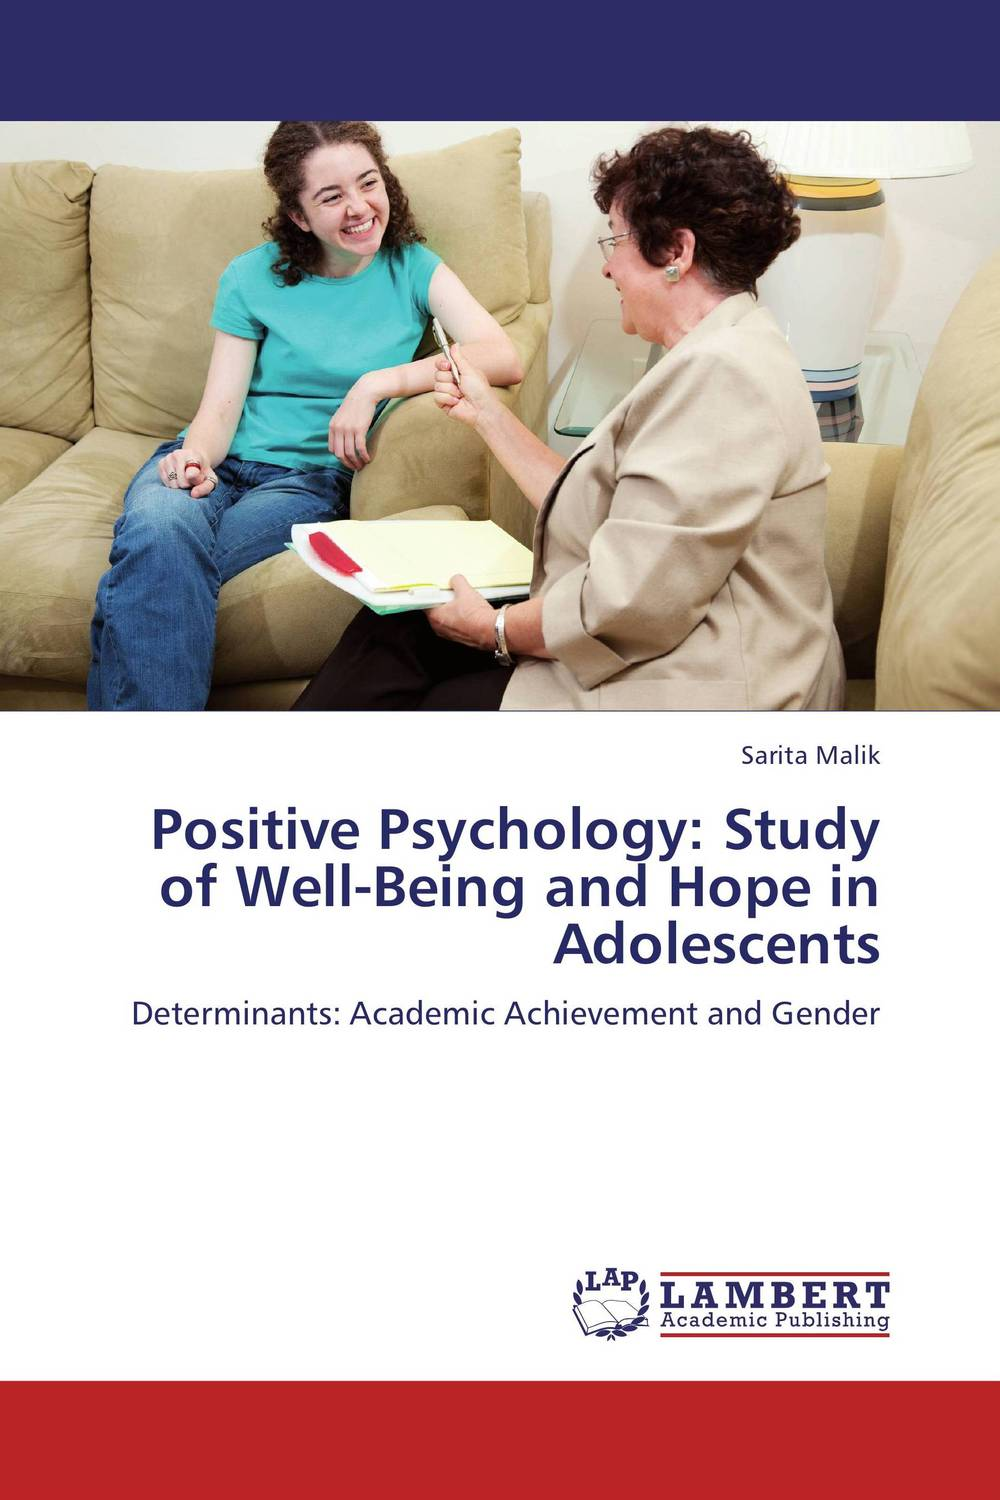 Positive Psychology: Study of Well-Being and Hope in Adolescents